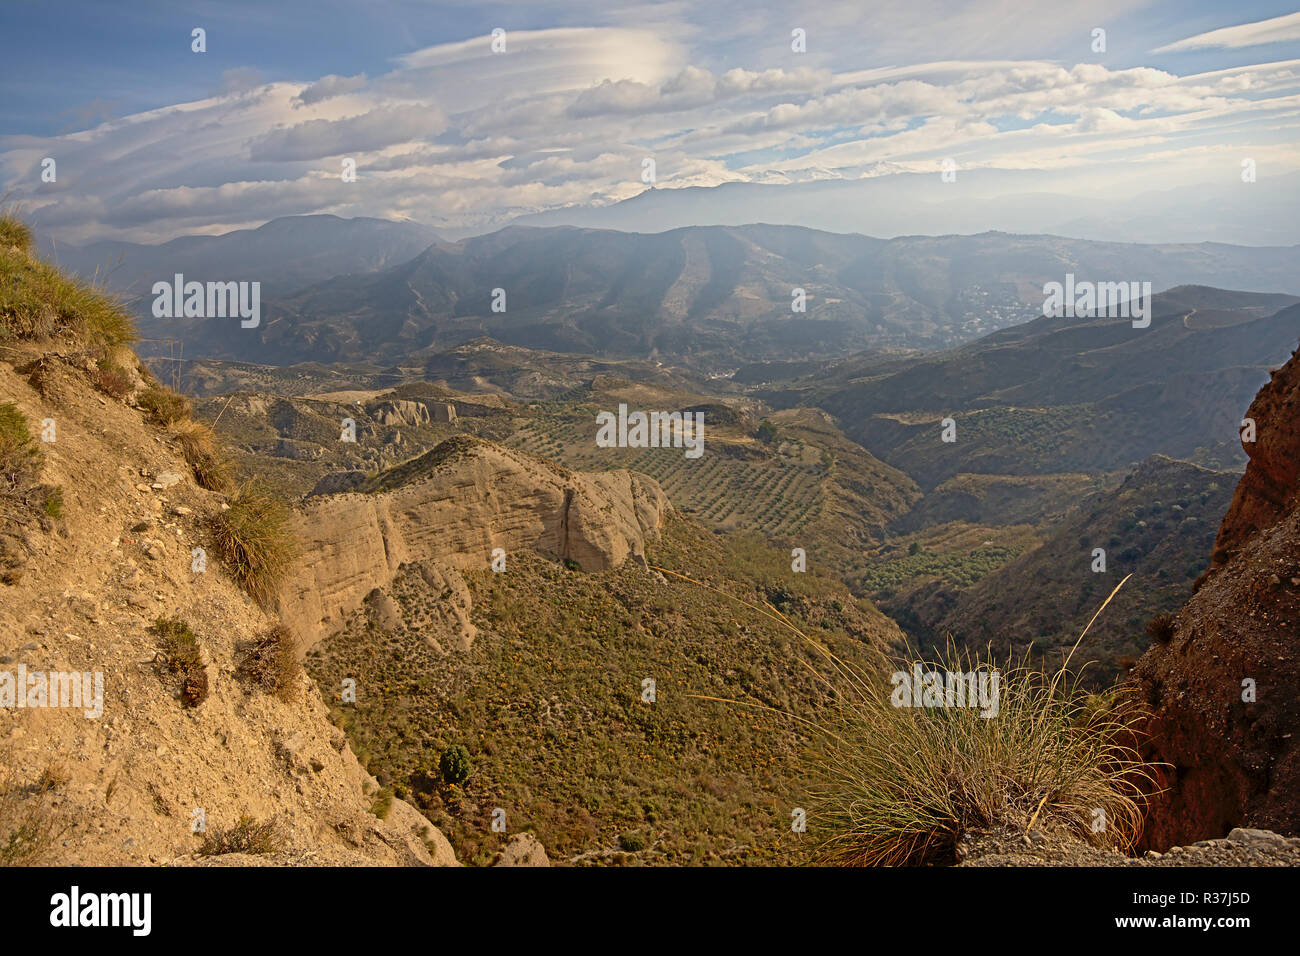 Cliffs of Sierra Nevada mountains on a sunny day with soft clouds, Andalusia, Spain - Stock Image